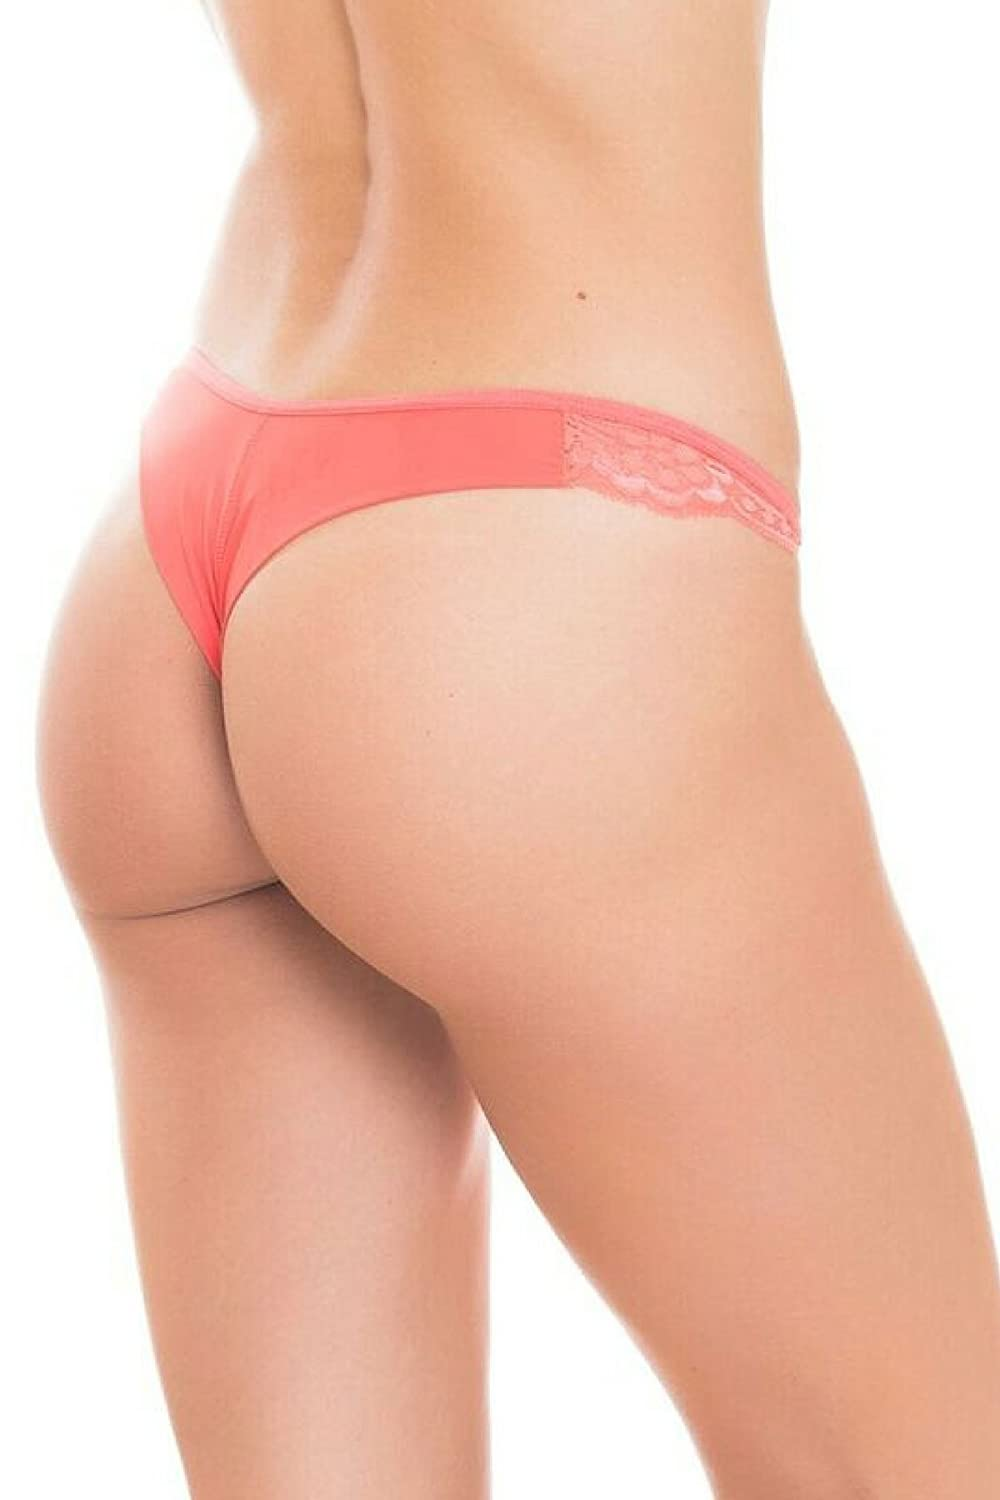 GB Intimates Coral Lace Brazilian Hipster Panties for Women Cheeky Underwear  Sexy Panty (Small) at Amazon Women s Clothing store  516860bb9